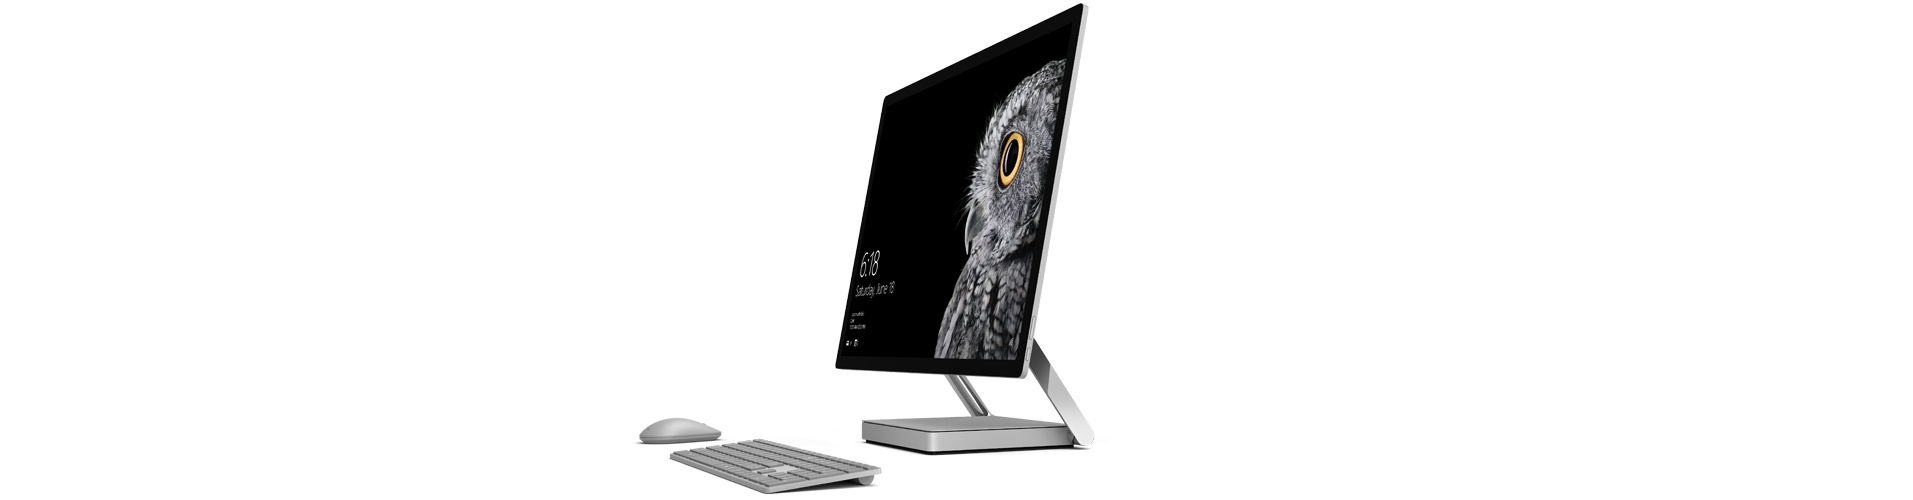 Surface Studio i opprett stilling med Surface Mouse og Keyboard.